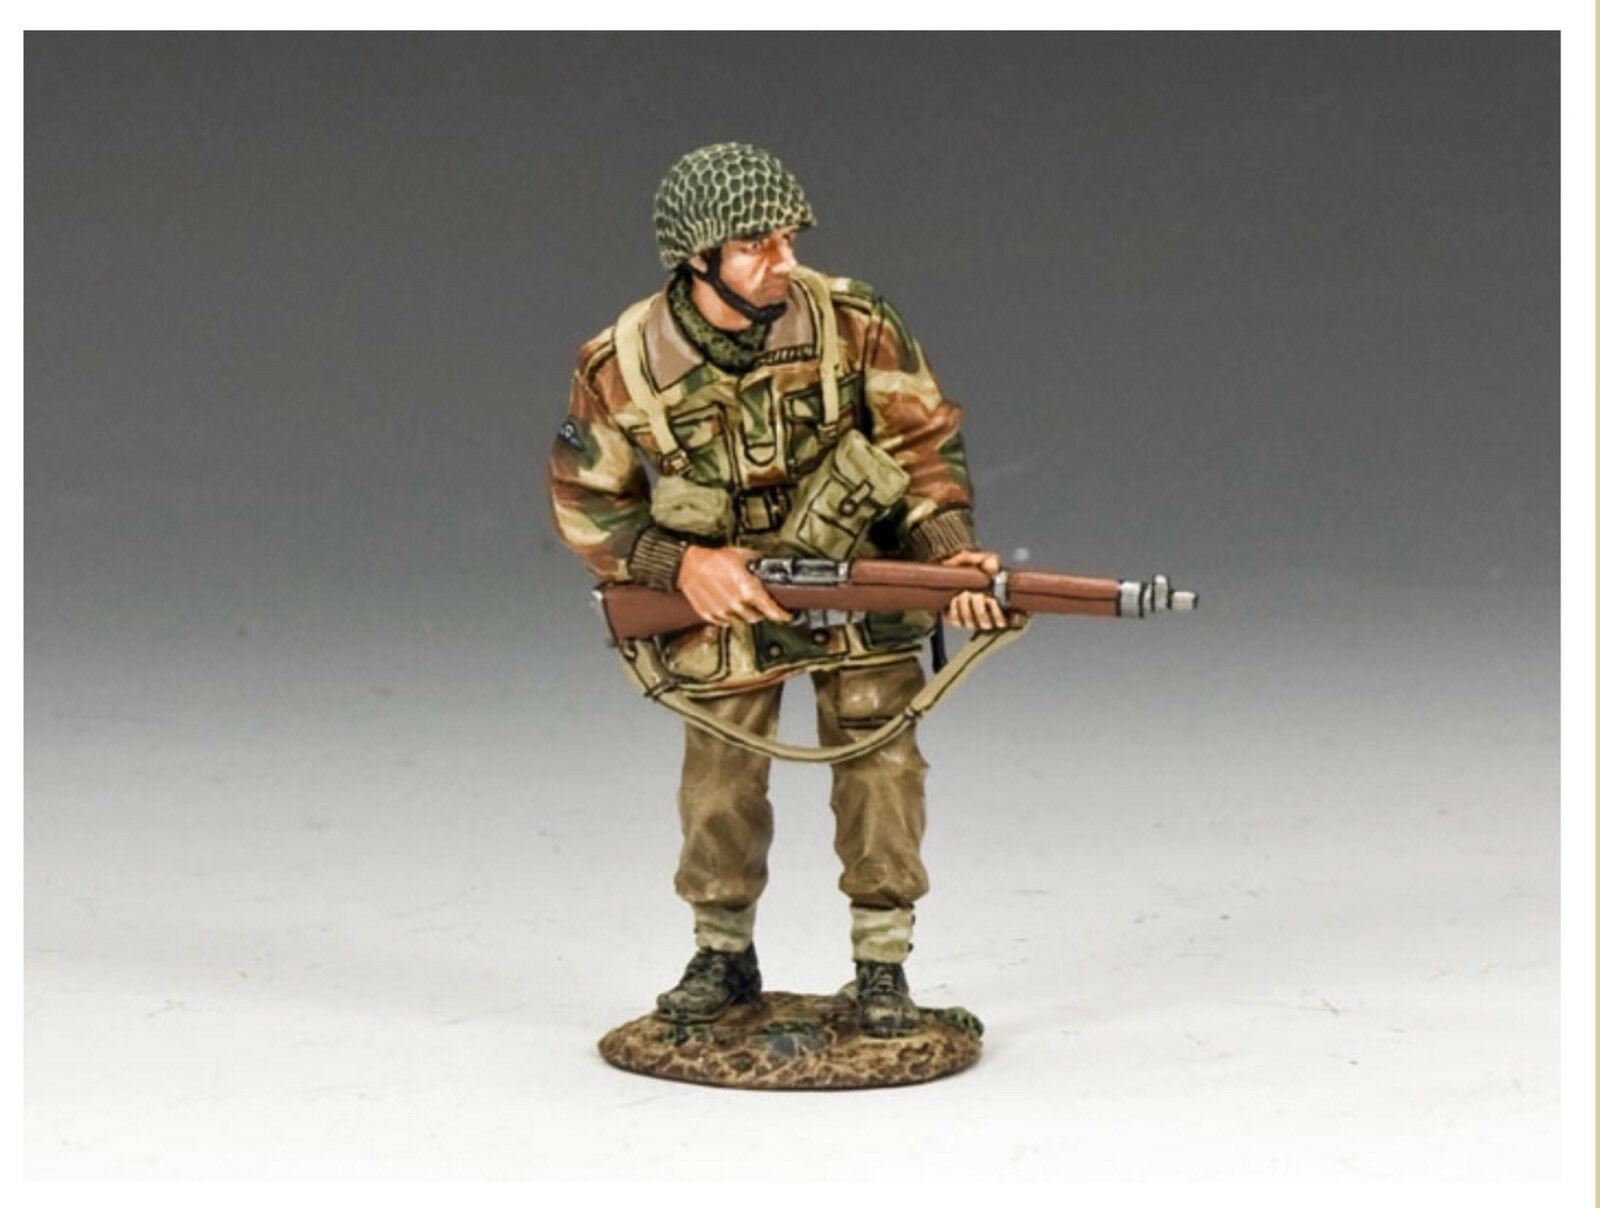 MG037(P) WW2 Arnhem Para Advancing With With Rifle MG37(P)